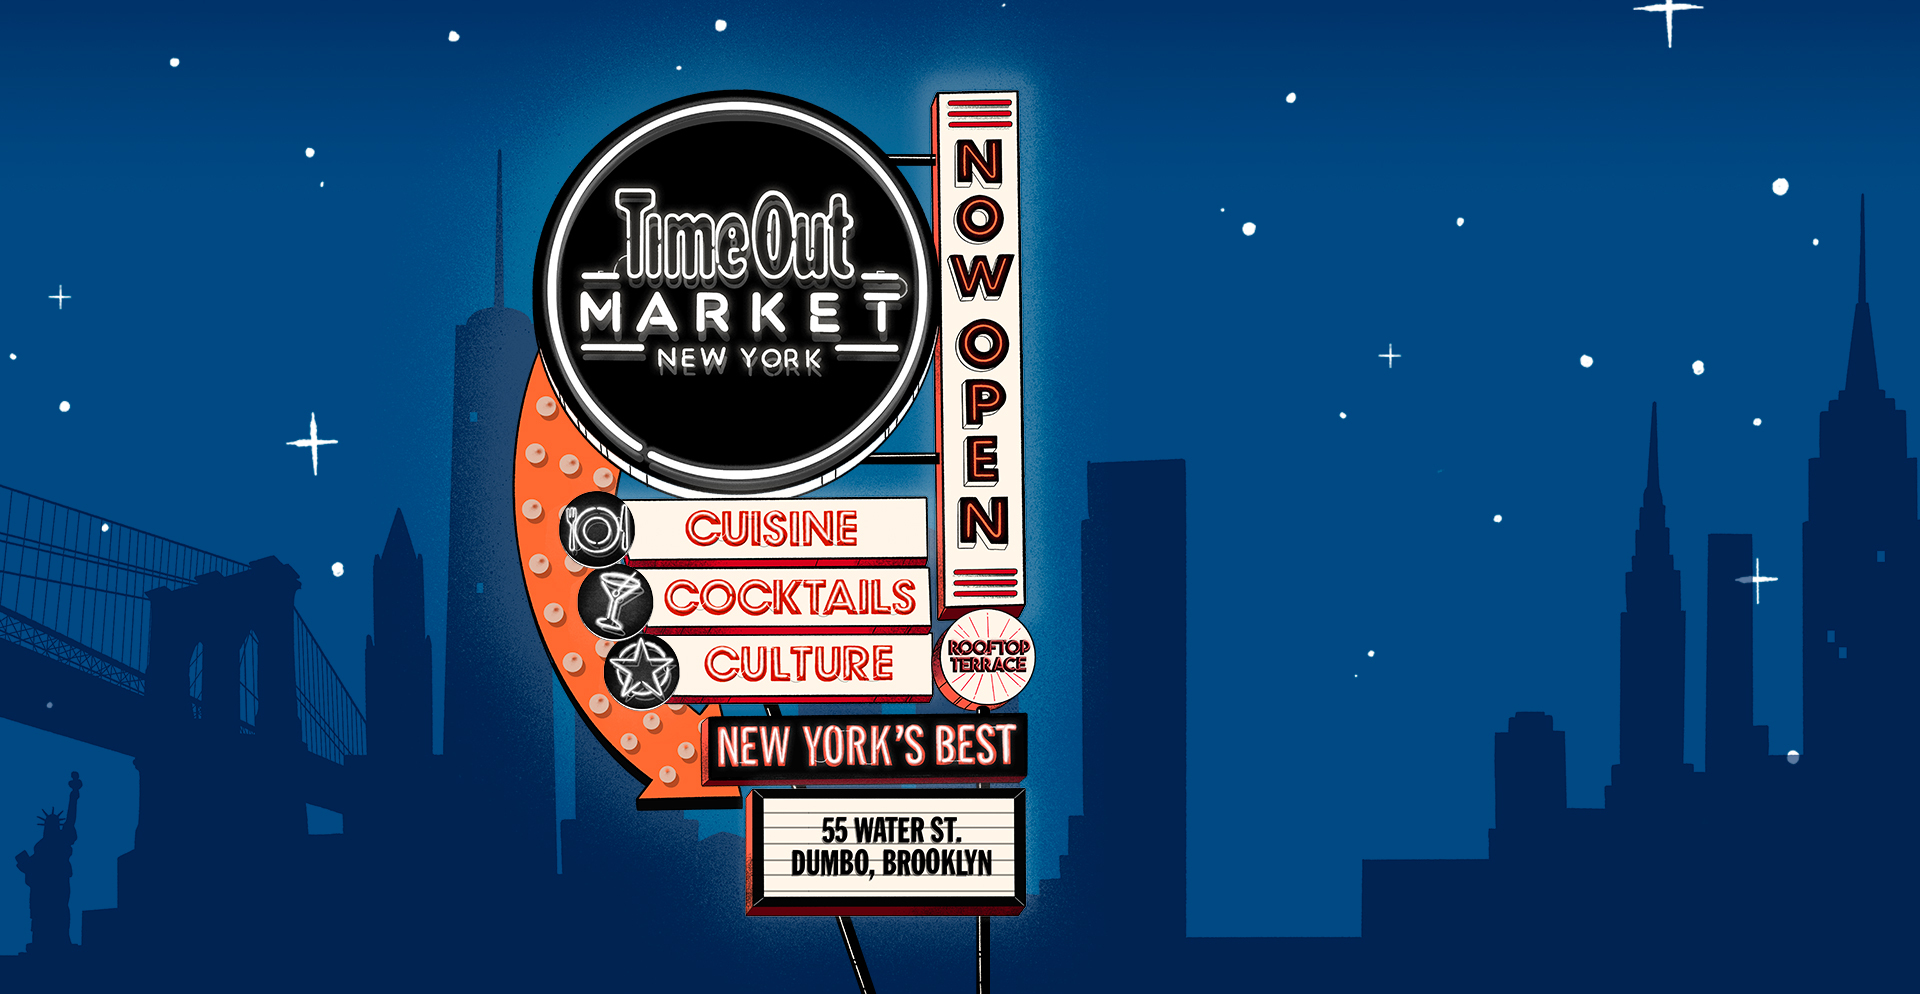 New York Market Has Reopened Neon Signage